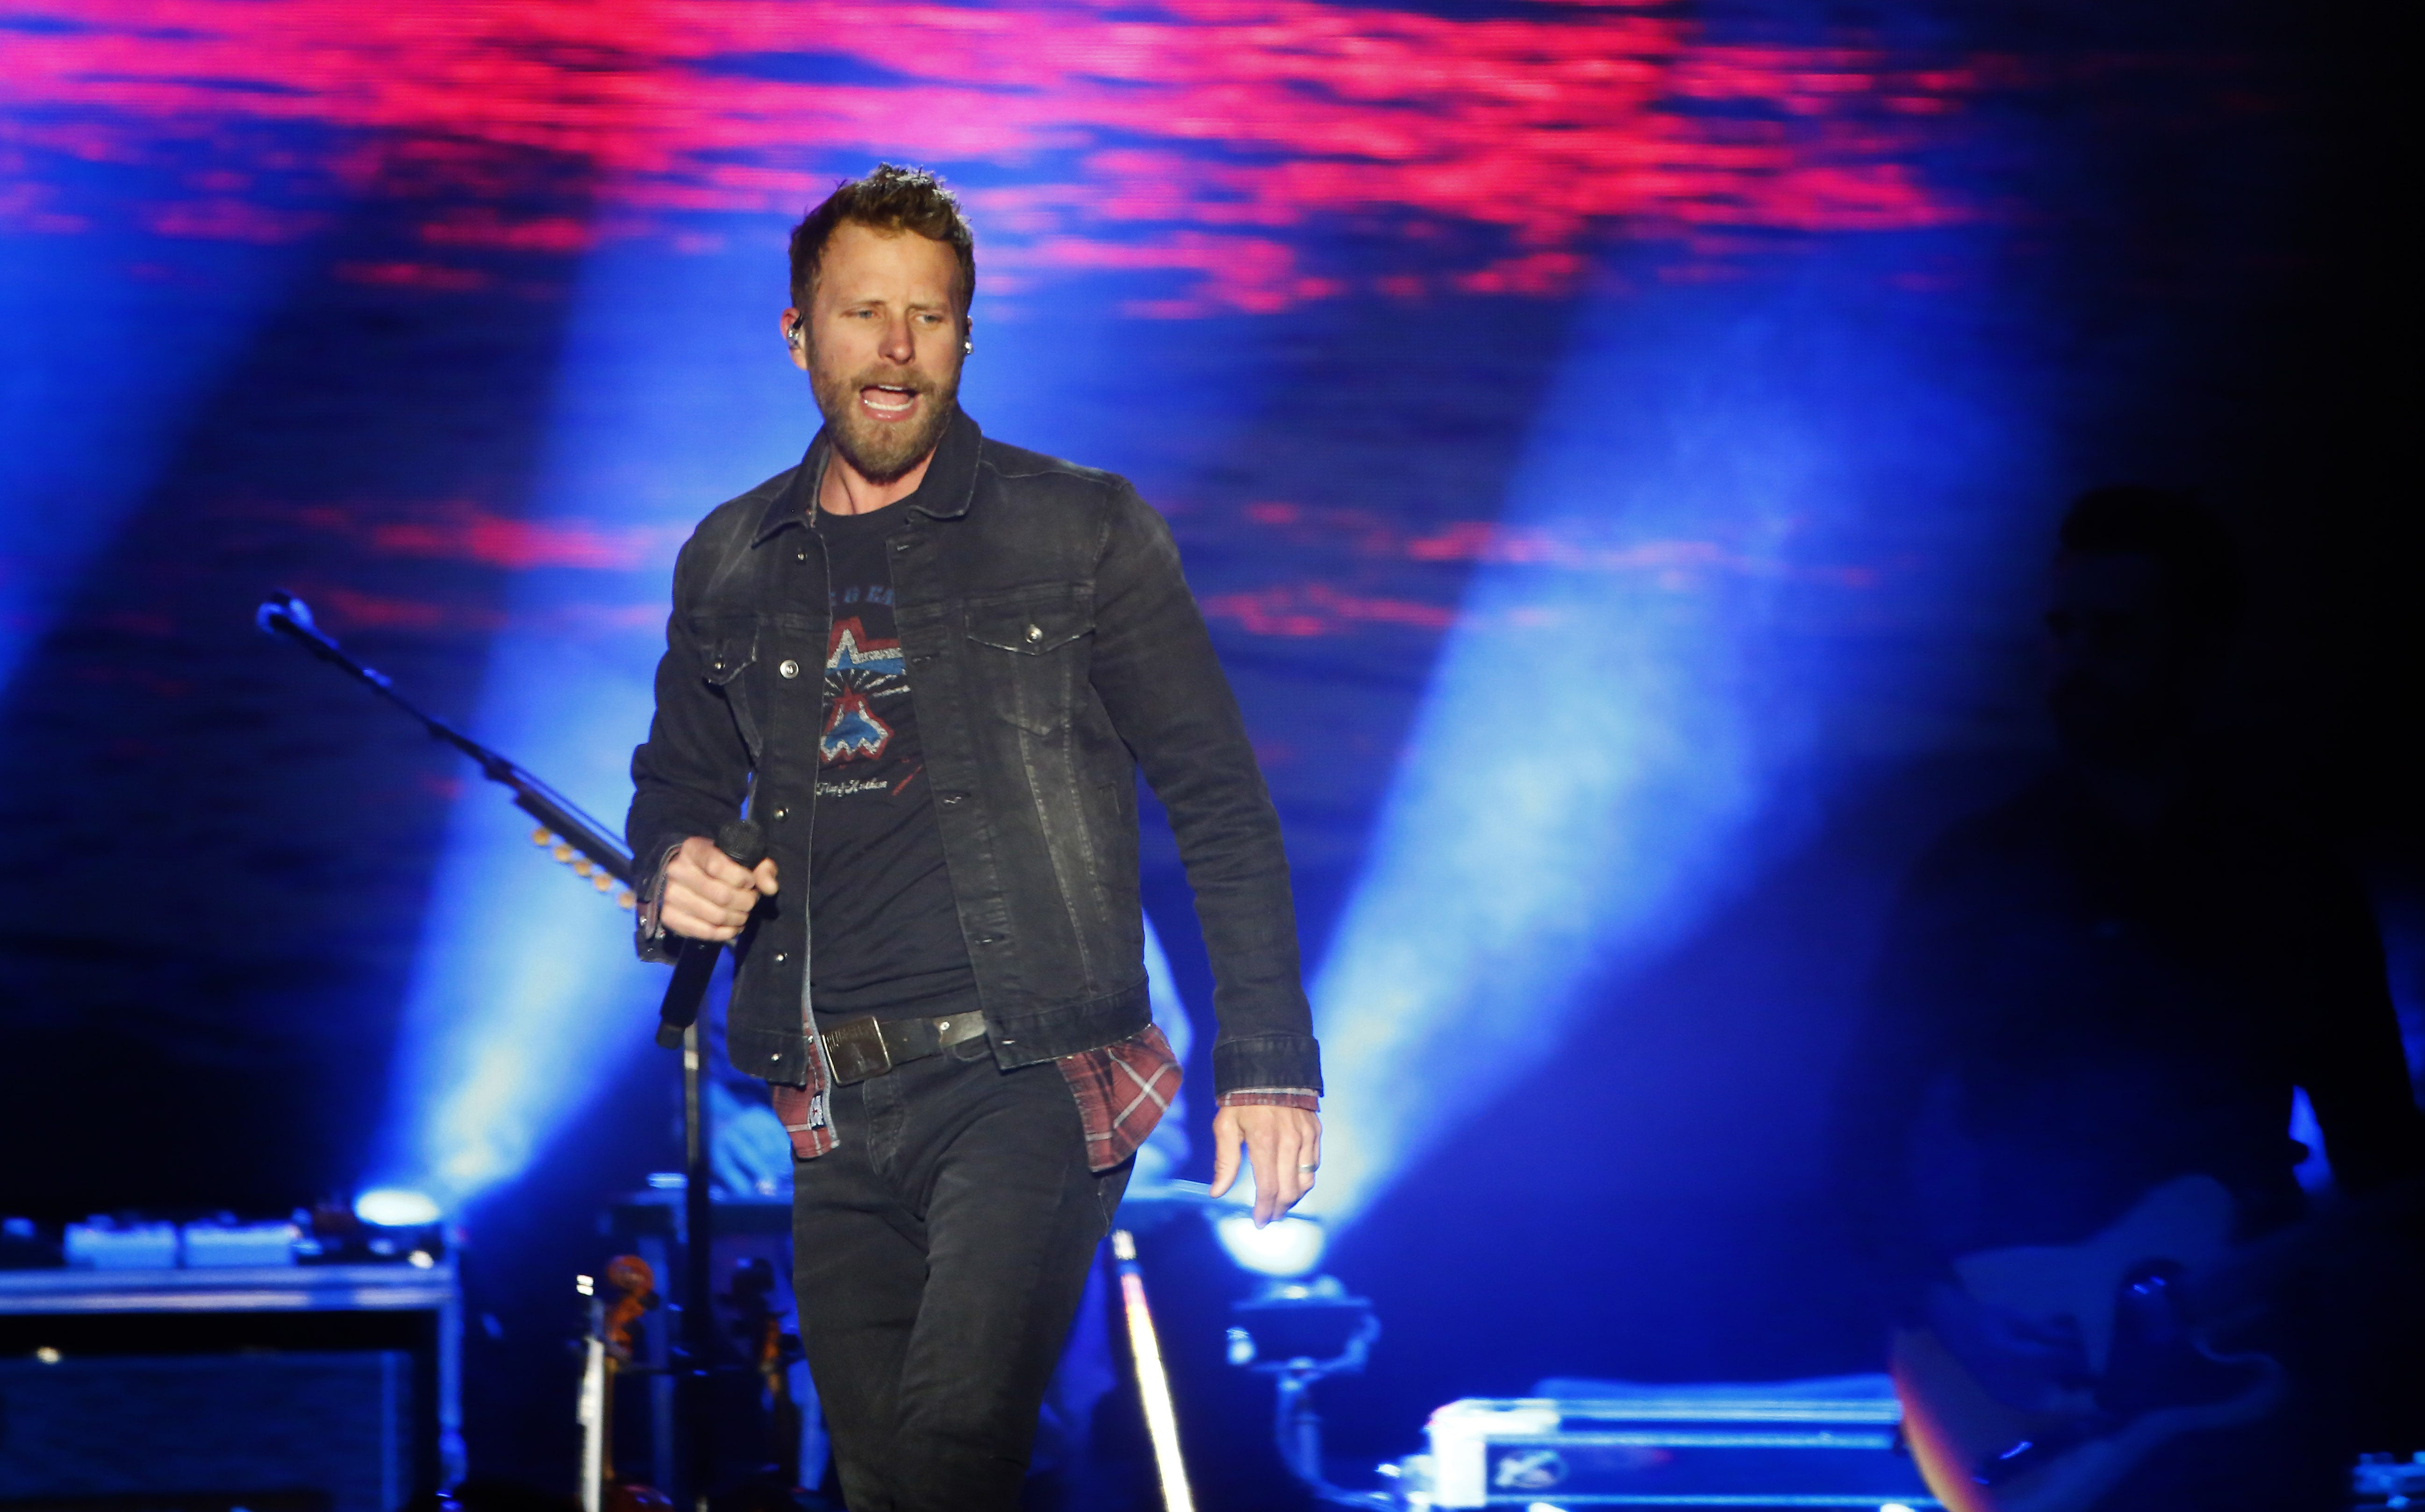 Dierks Bentley's Country Thunder homecoming was rowdy and reflective